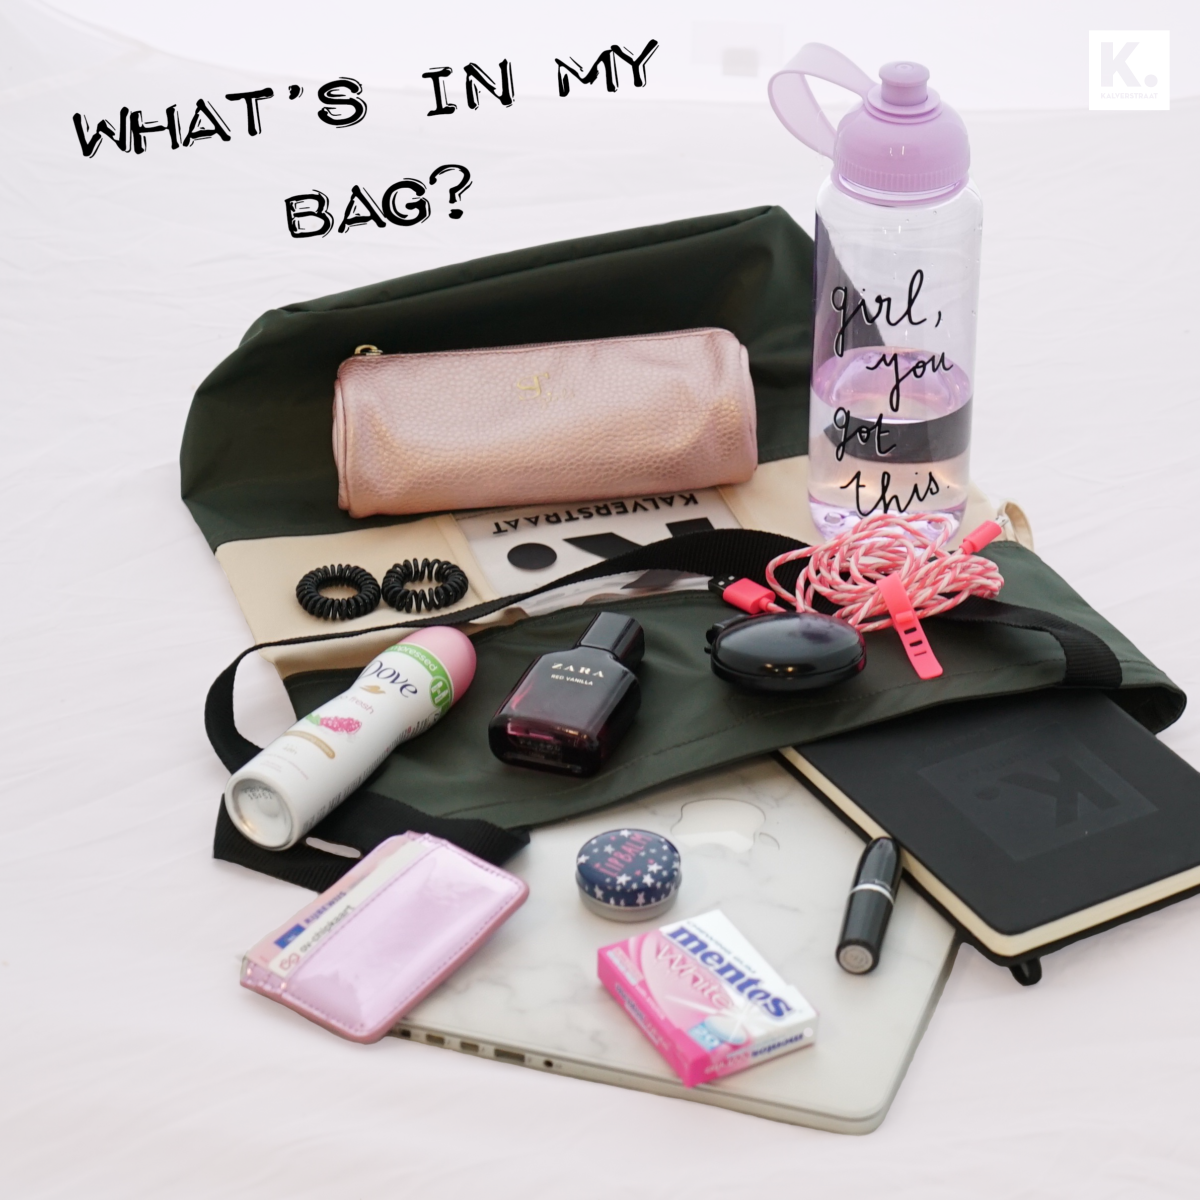 What's in our bag?